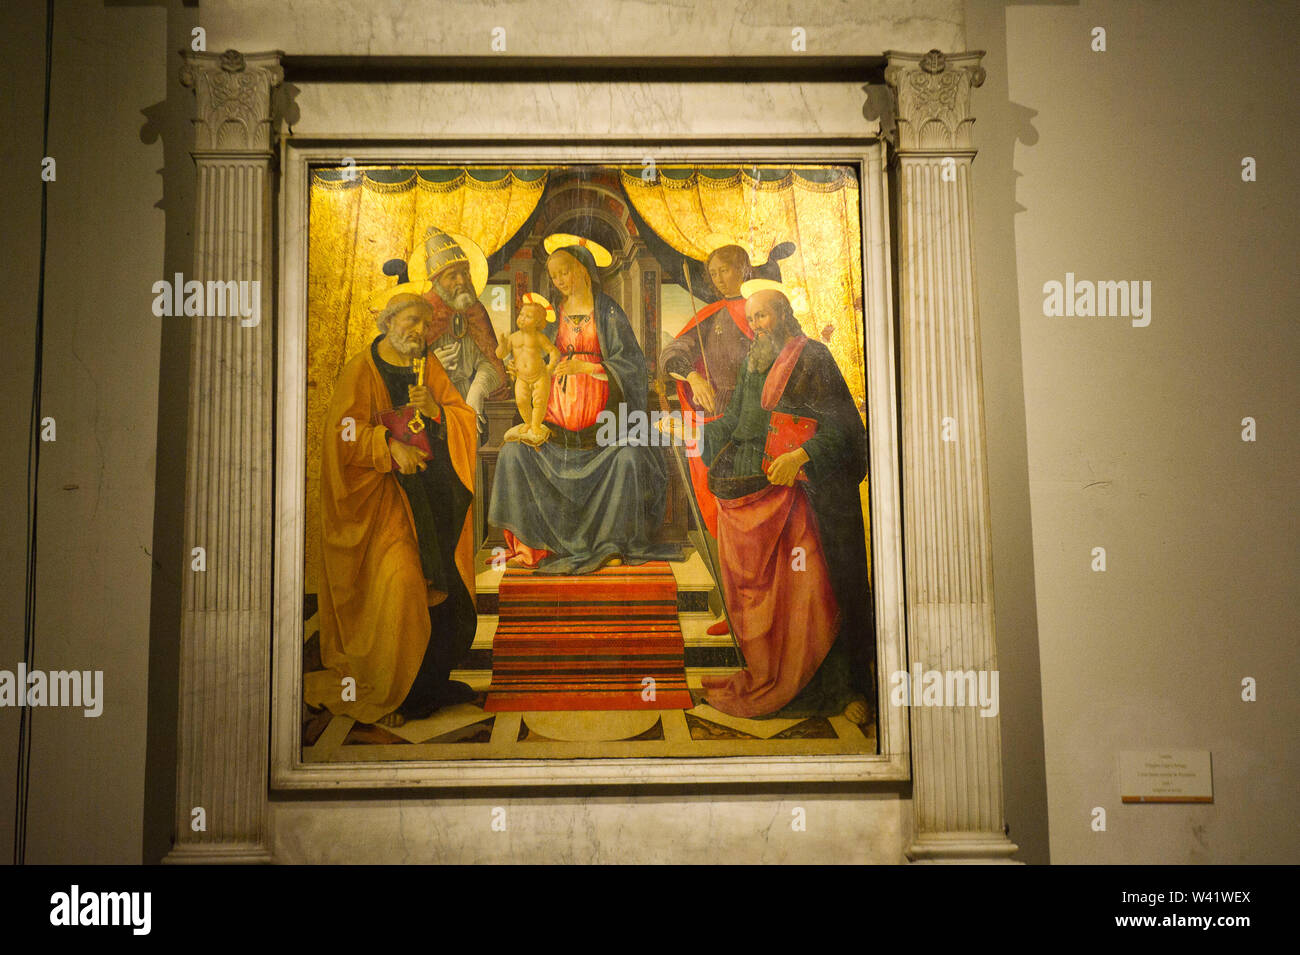 Italy, Tuscany, Lucca, San Martino cathedral, Virgin and Child with Saints Peter, Clement, Sebastian and Paul. 1479, tempera on panel by Ghirlandaio Stock Photo